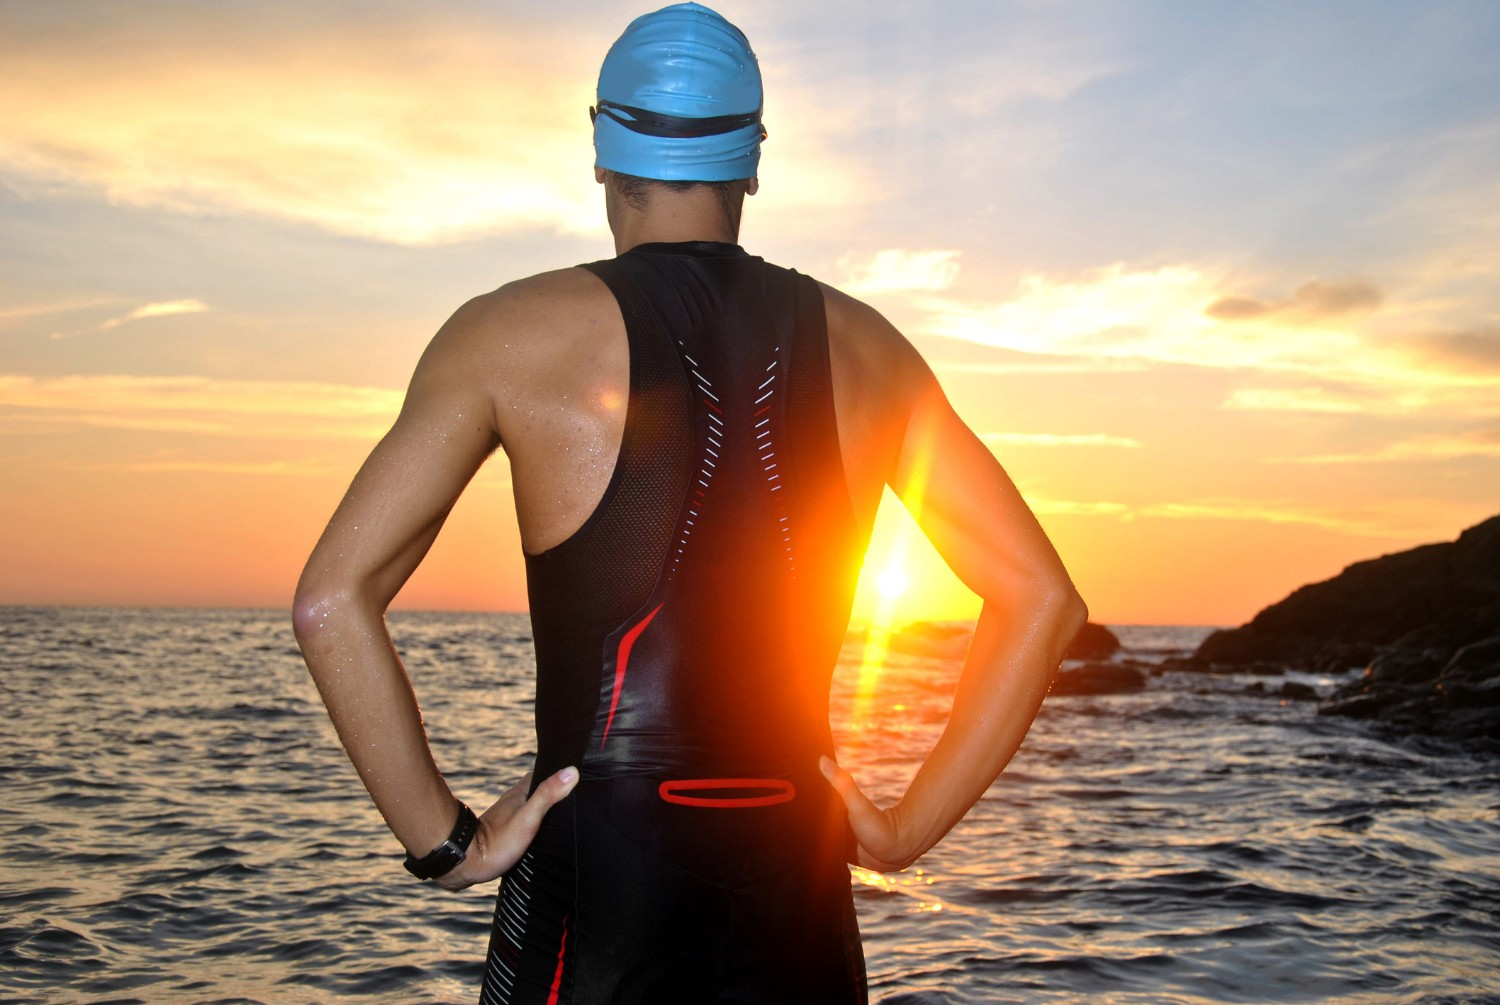 young athlete prepares for Ironman Hawaii 2018 Triathlon